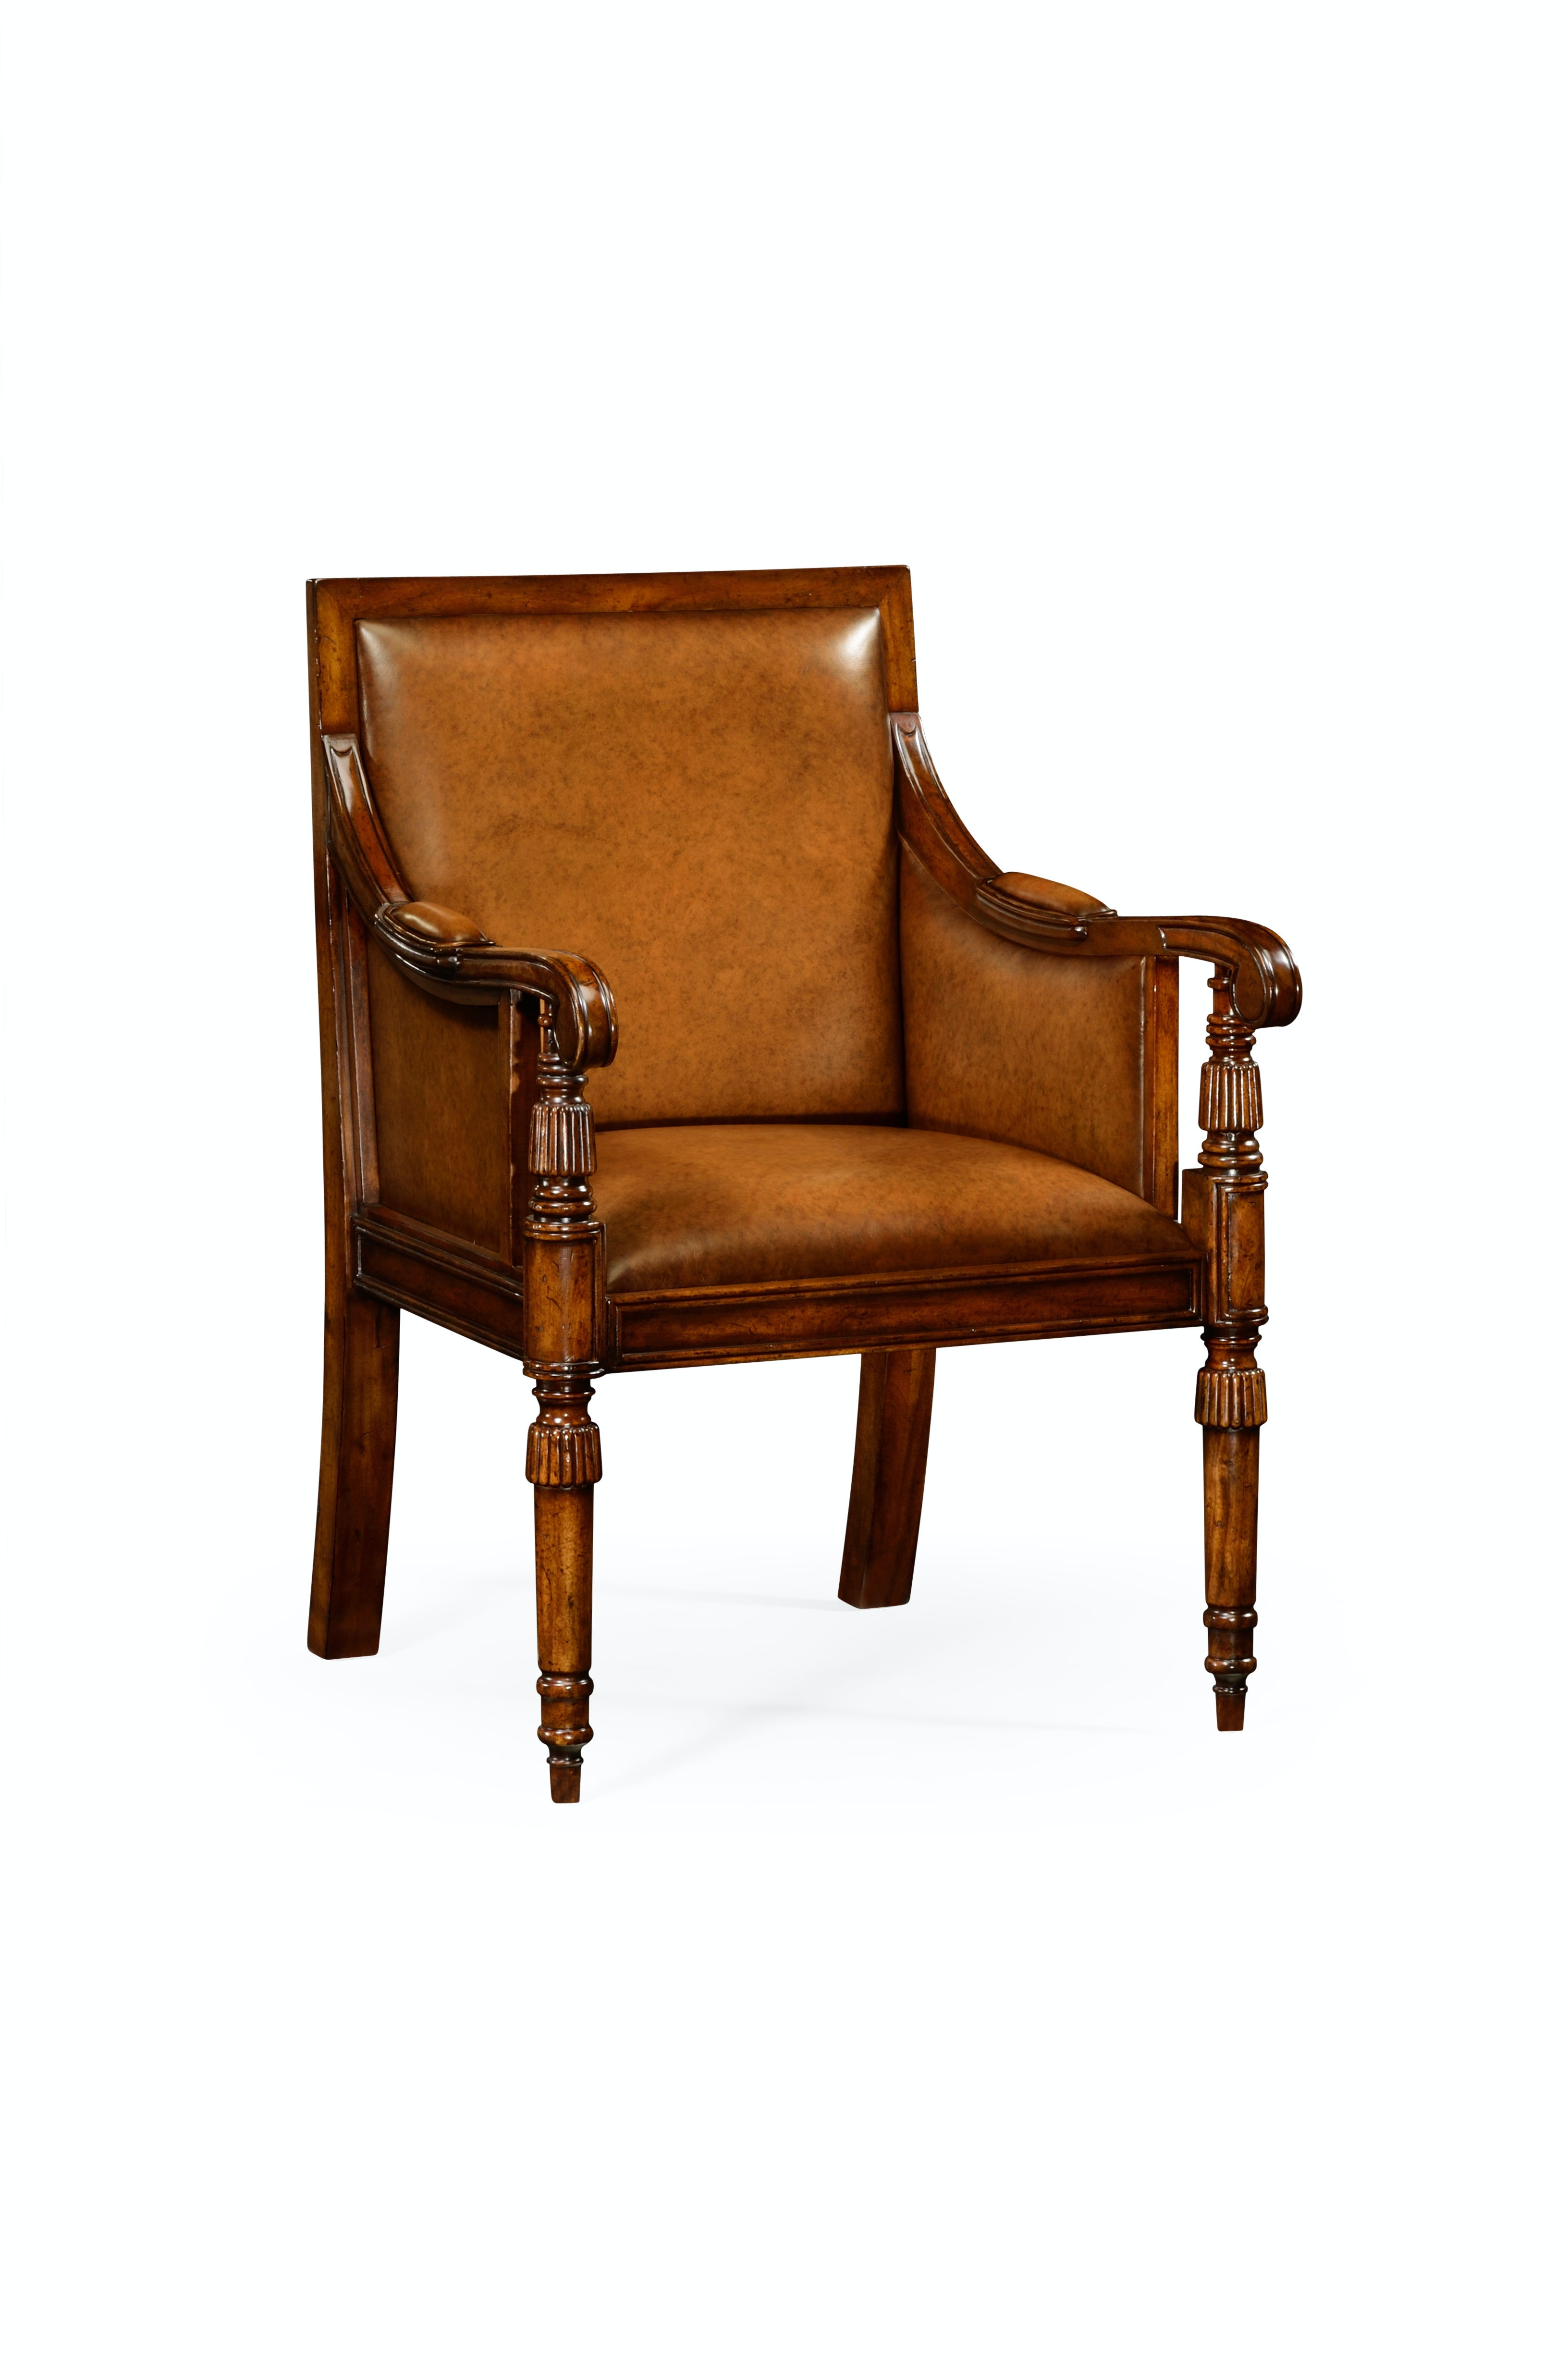 bergere dining chairs table and chair rentals nyc leather with medium antique chestnut jonathan charles qj492626wall002